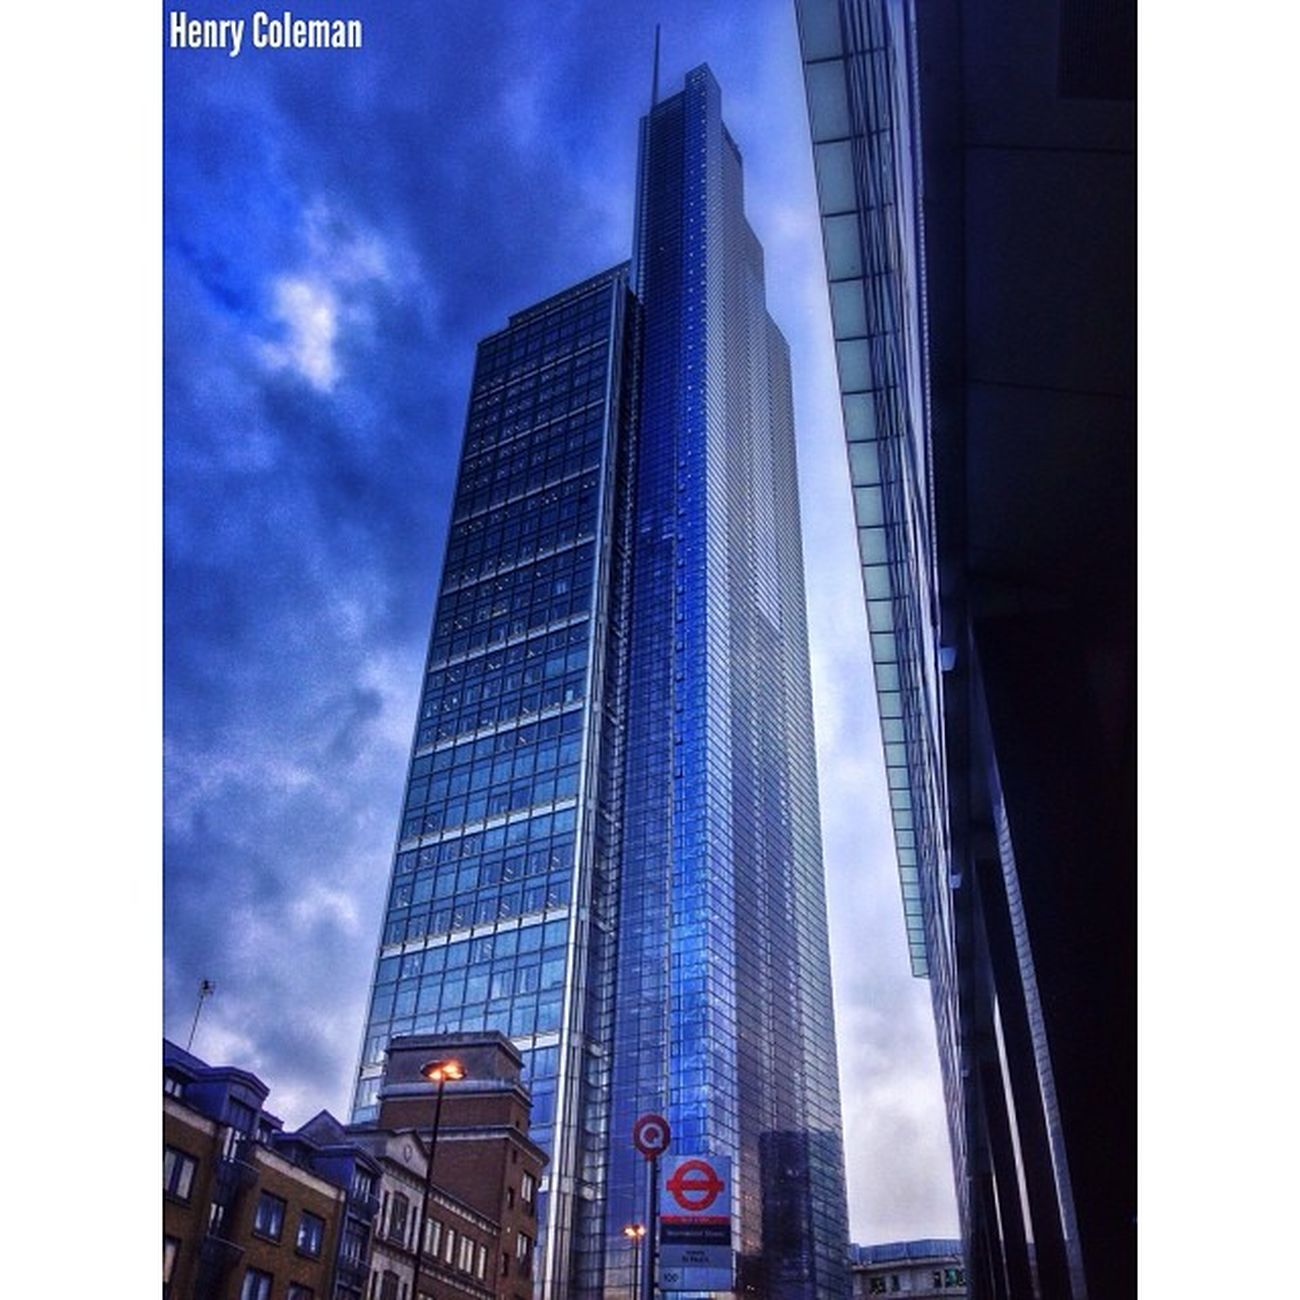 Tower 42 part of my 5shotchallenge 2/5 Udog_peopleandplaces Udog_sky Lovelondon London London_only Londonpop London_only_members Igerslondon Ig_london Ig_england Ig_europe Guesstination Streetshot_london Internationalgrammers Rising_masters Icu_britain Streetshot_london